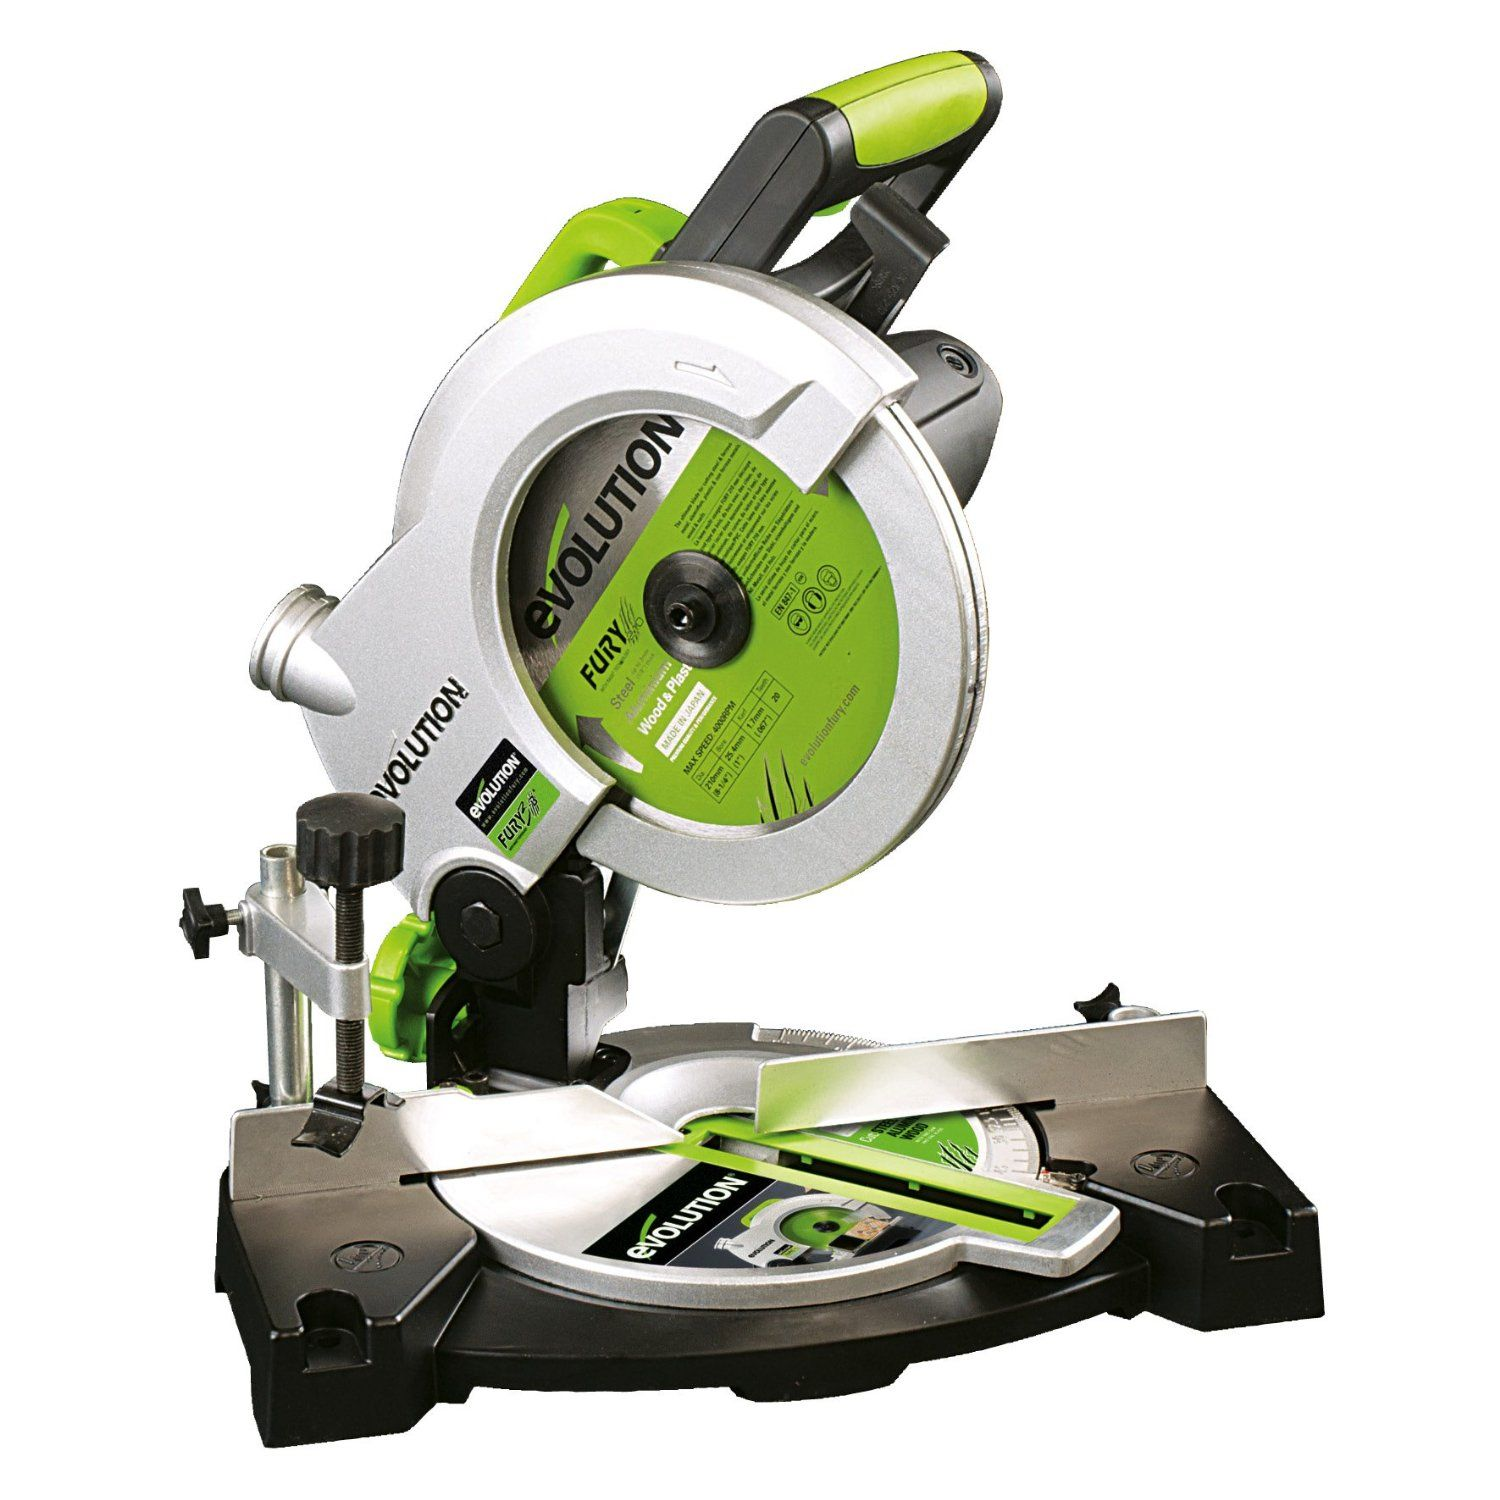 fury 3B compound mitre saw